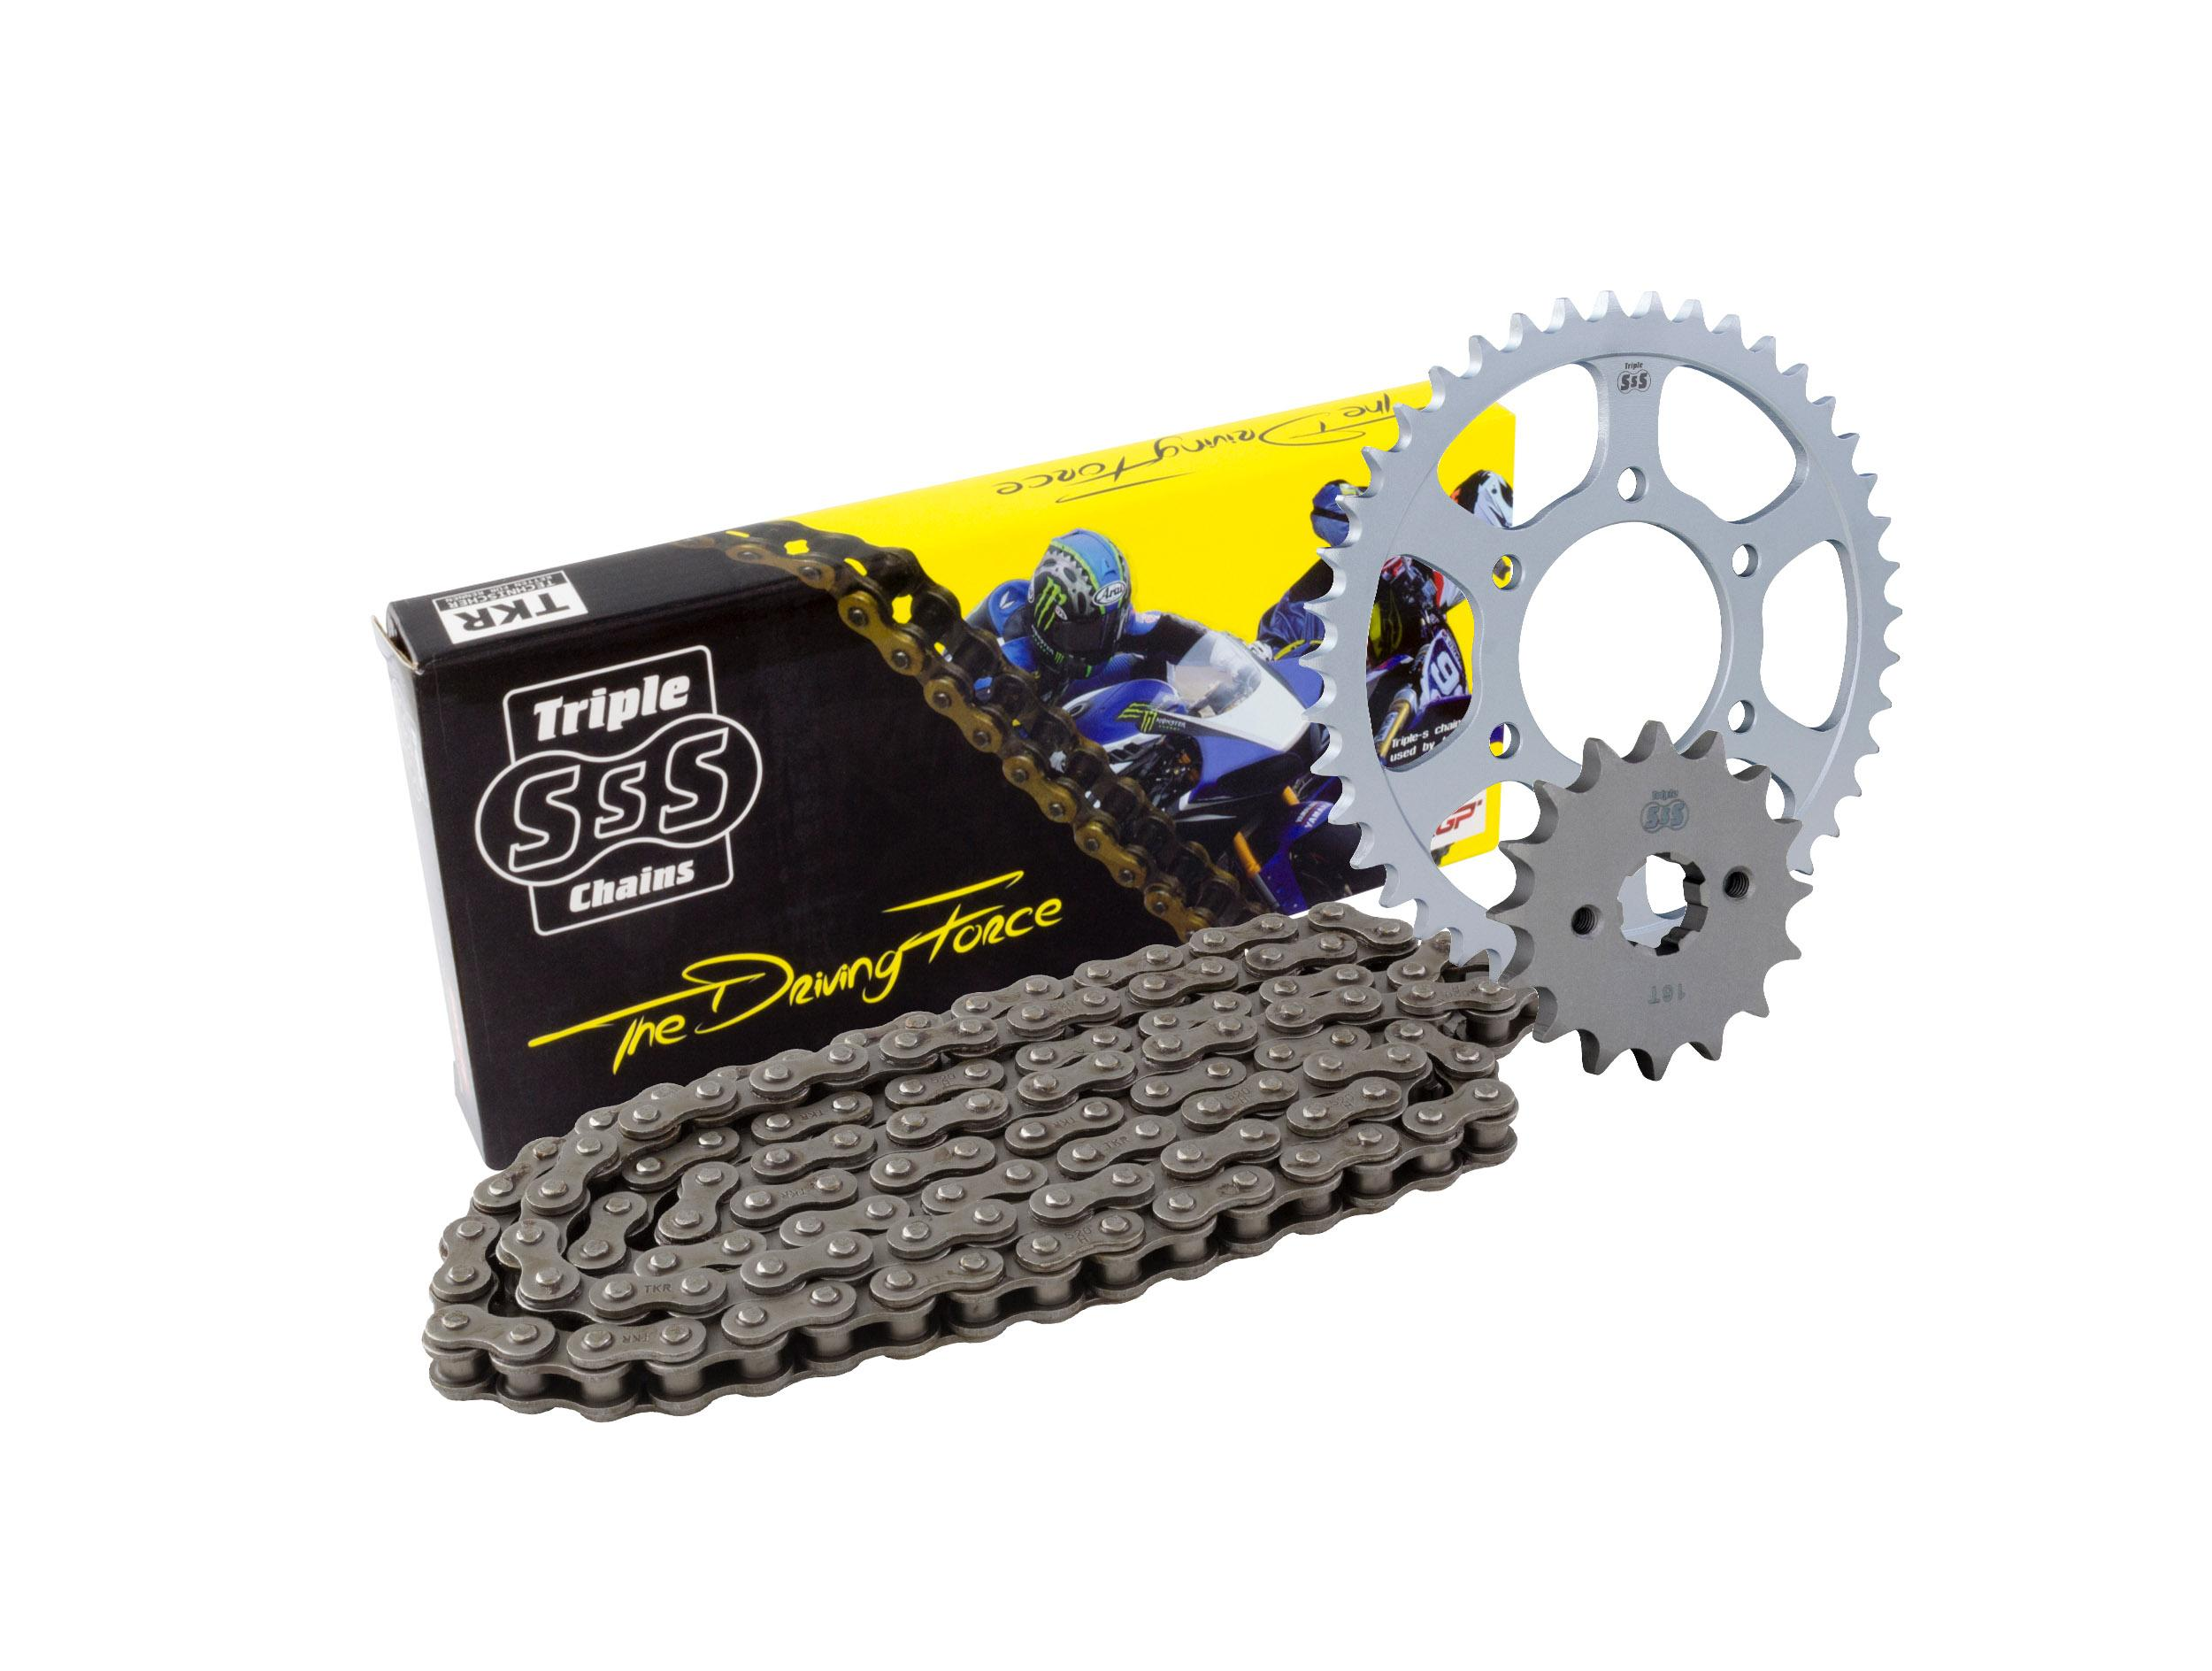 Cagiva 125 Raptor 04-10, Mito Euro 04-08 Chain & Sprocket Kit: 14T Front, 43T Rear, HD Chain 520H 116Link